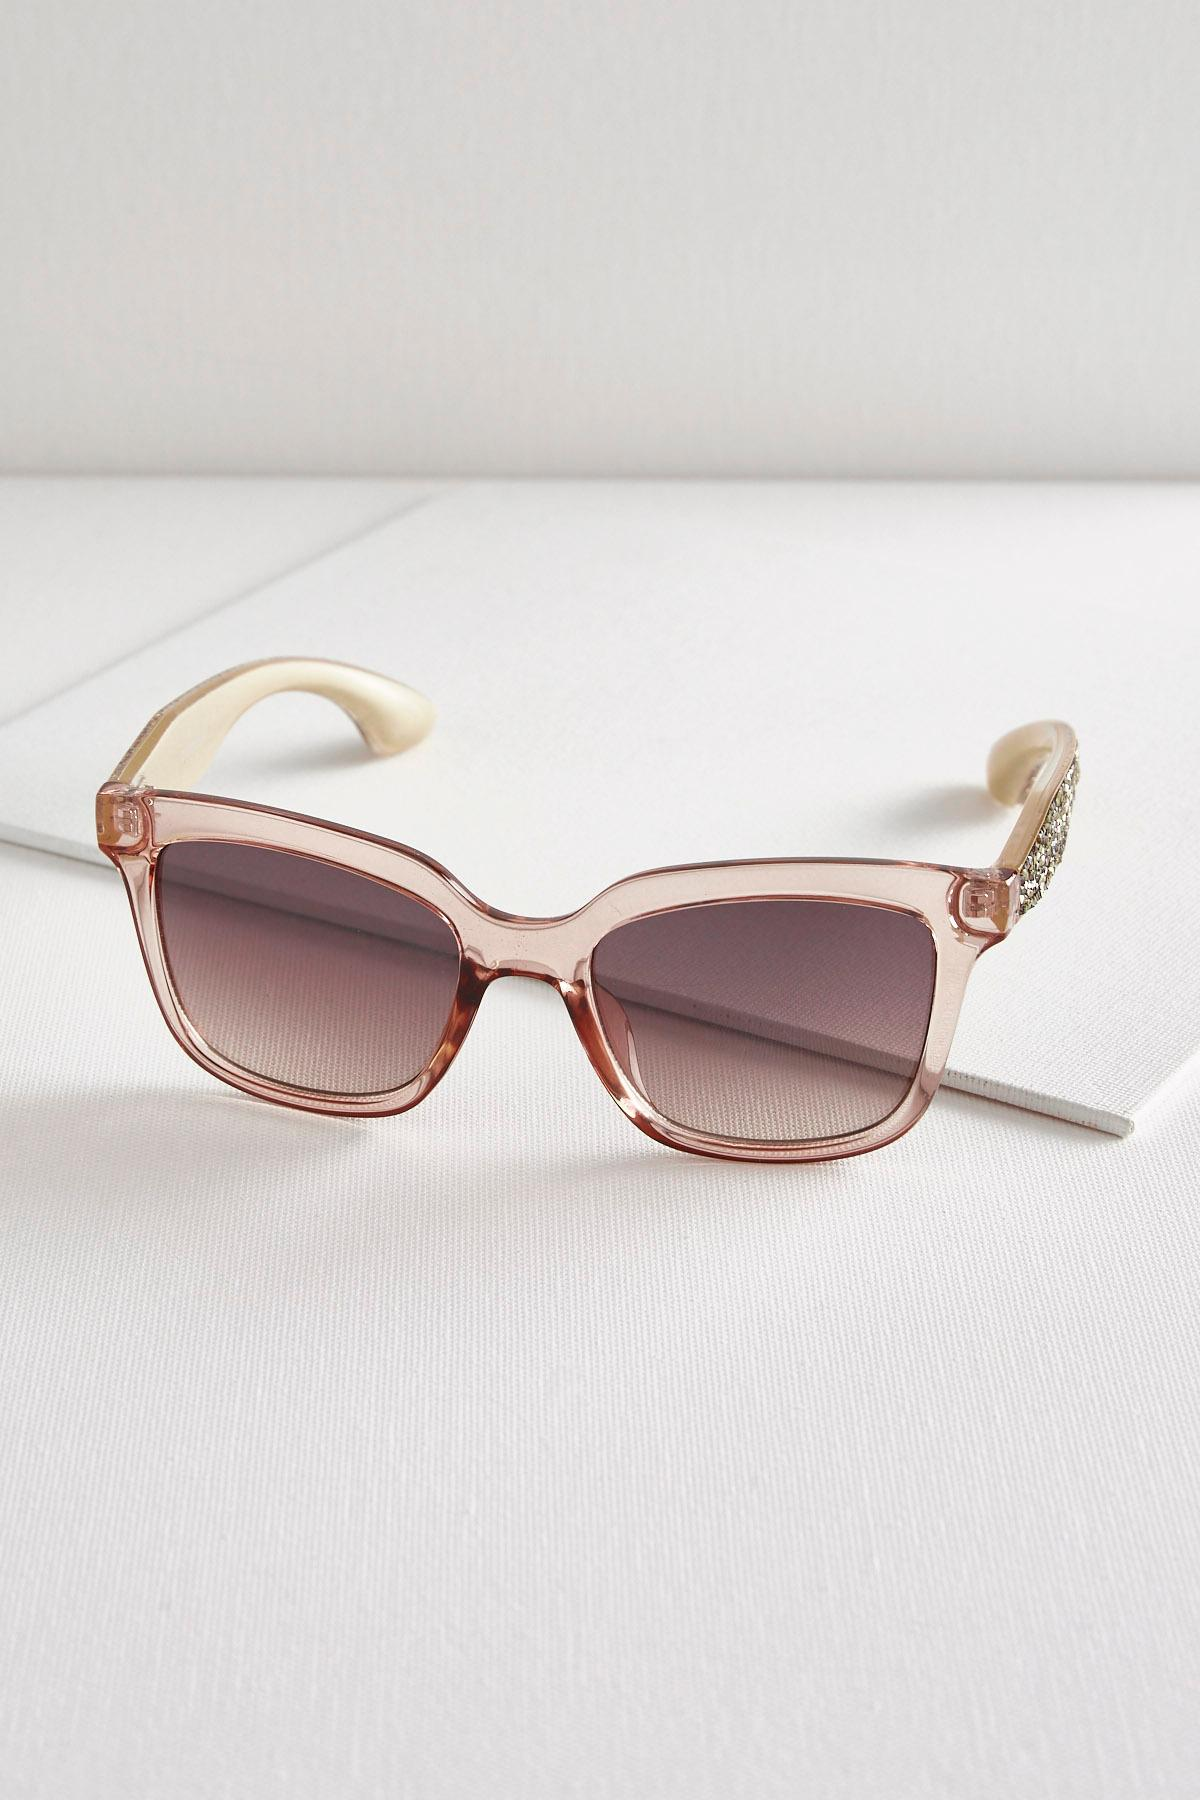 Chipped Stone Arm Catyeye Sunglasses